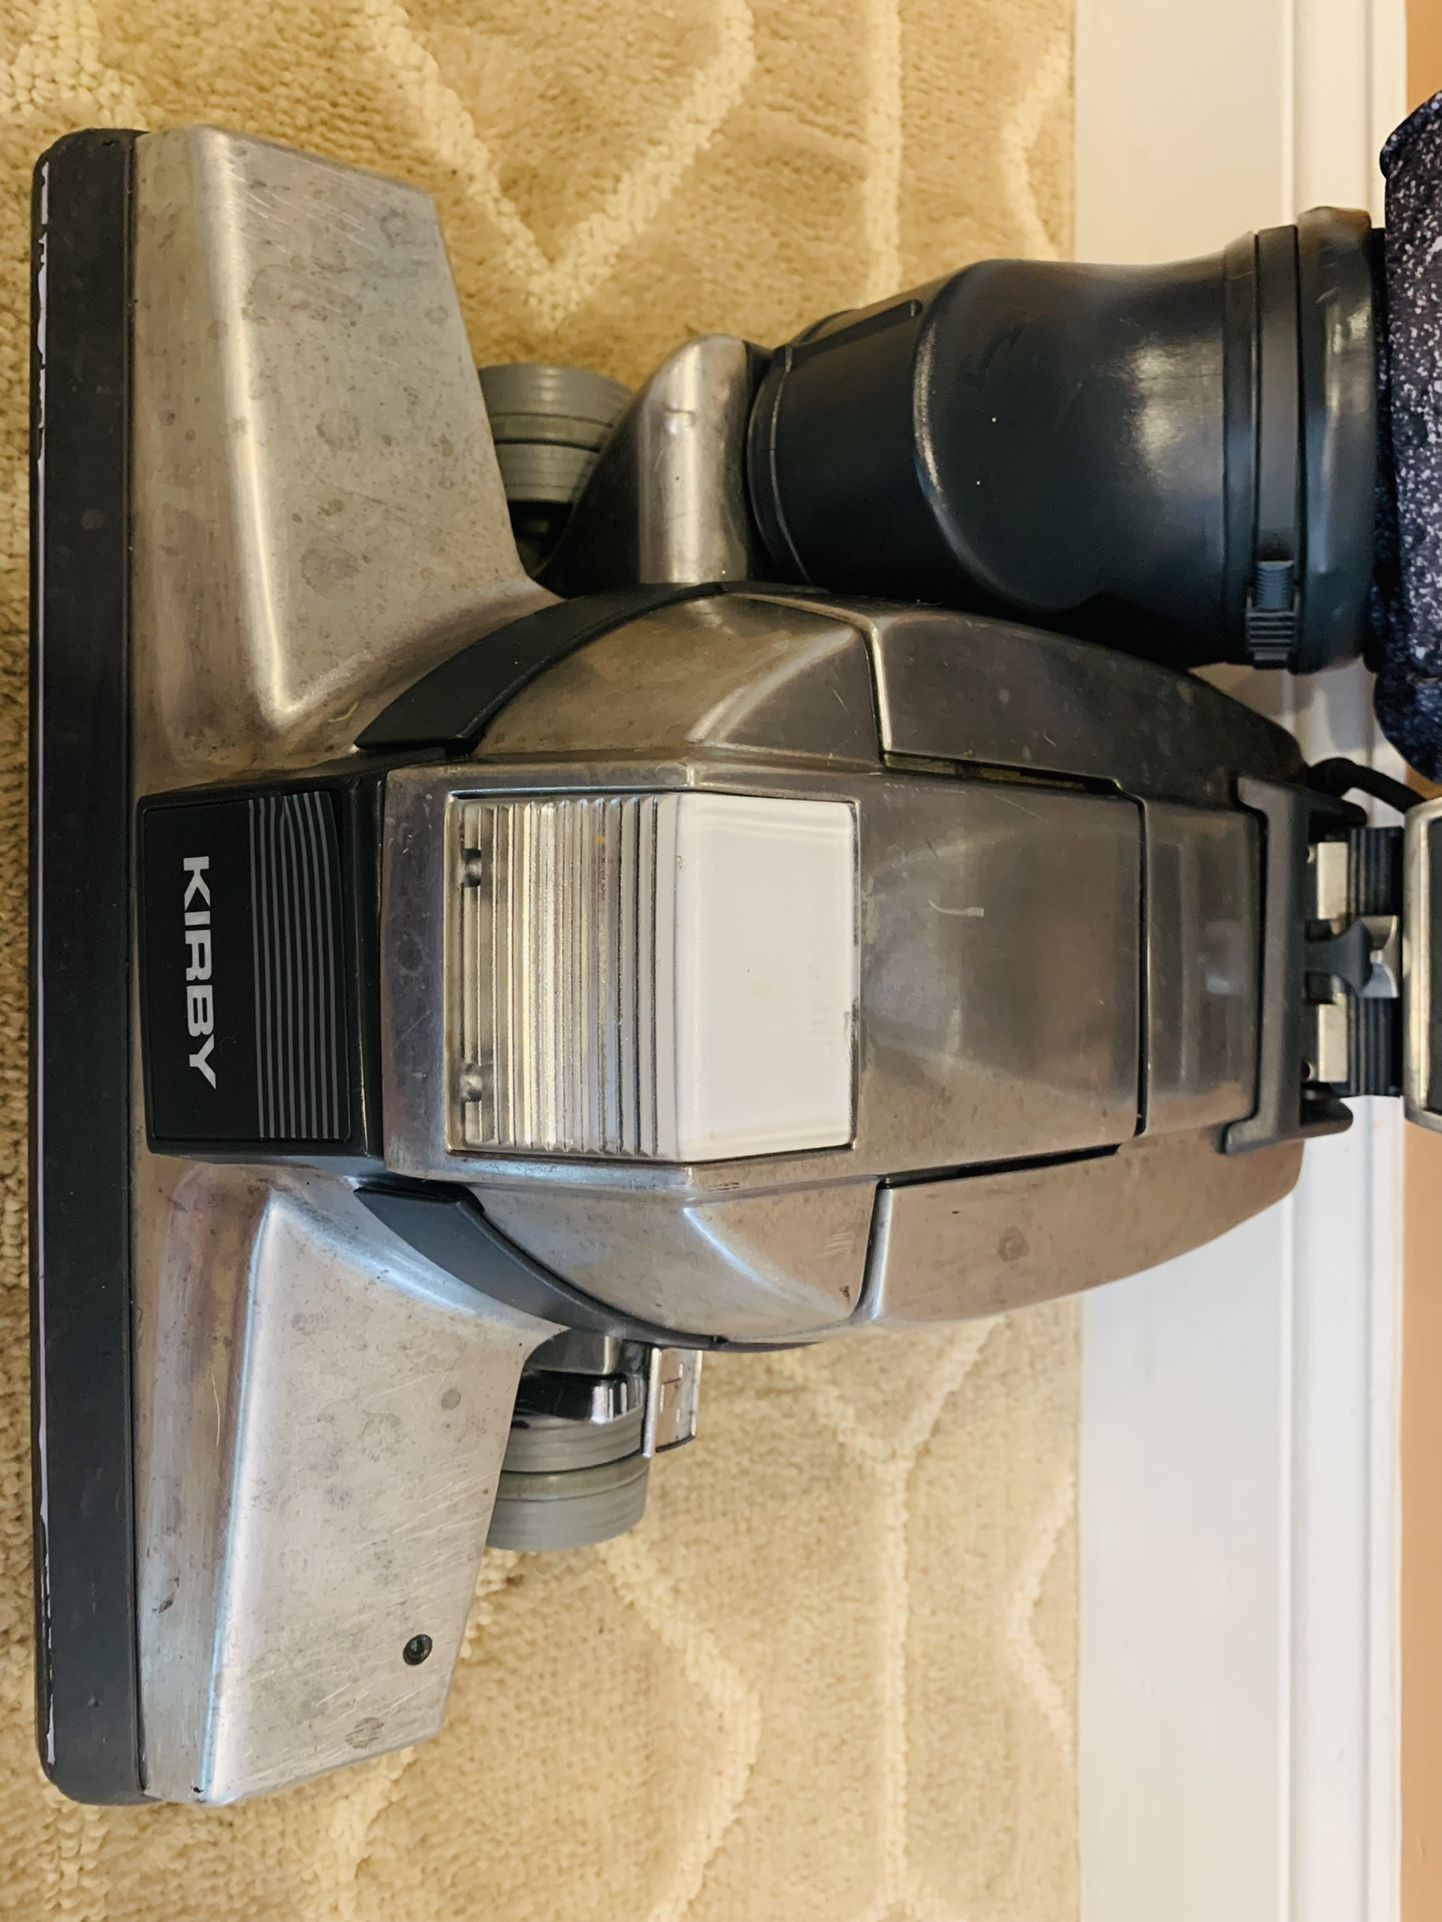 Kirby G4 vacuum cleaner with attachments and shampooer